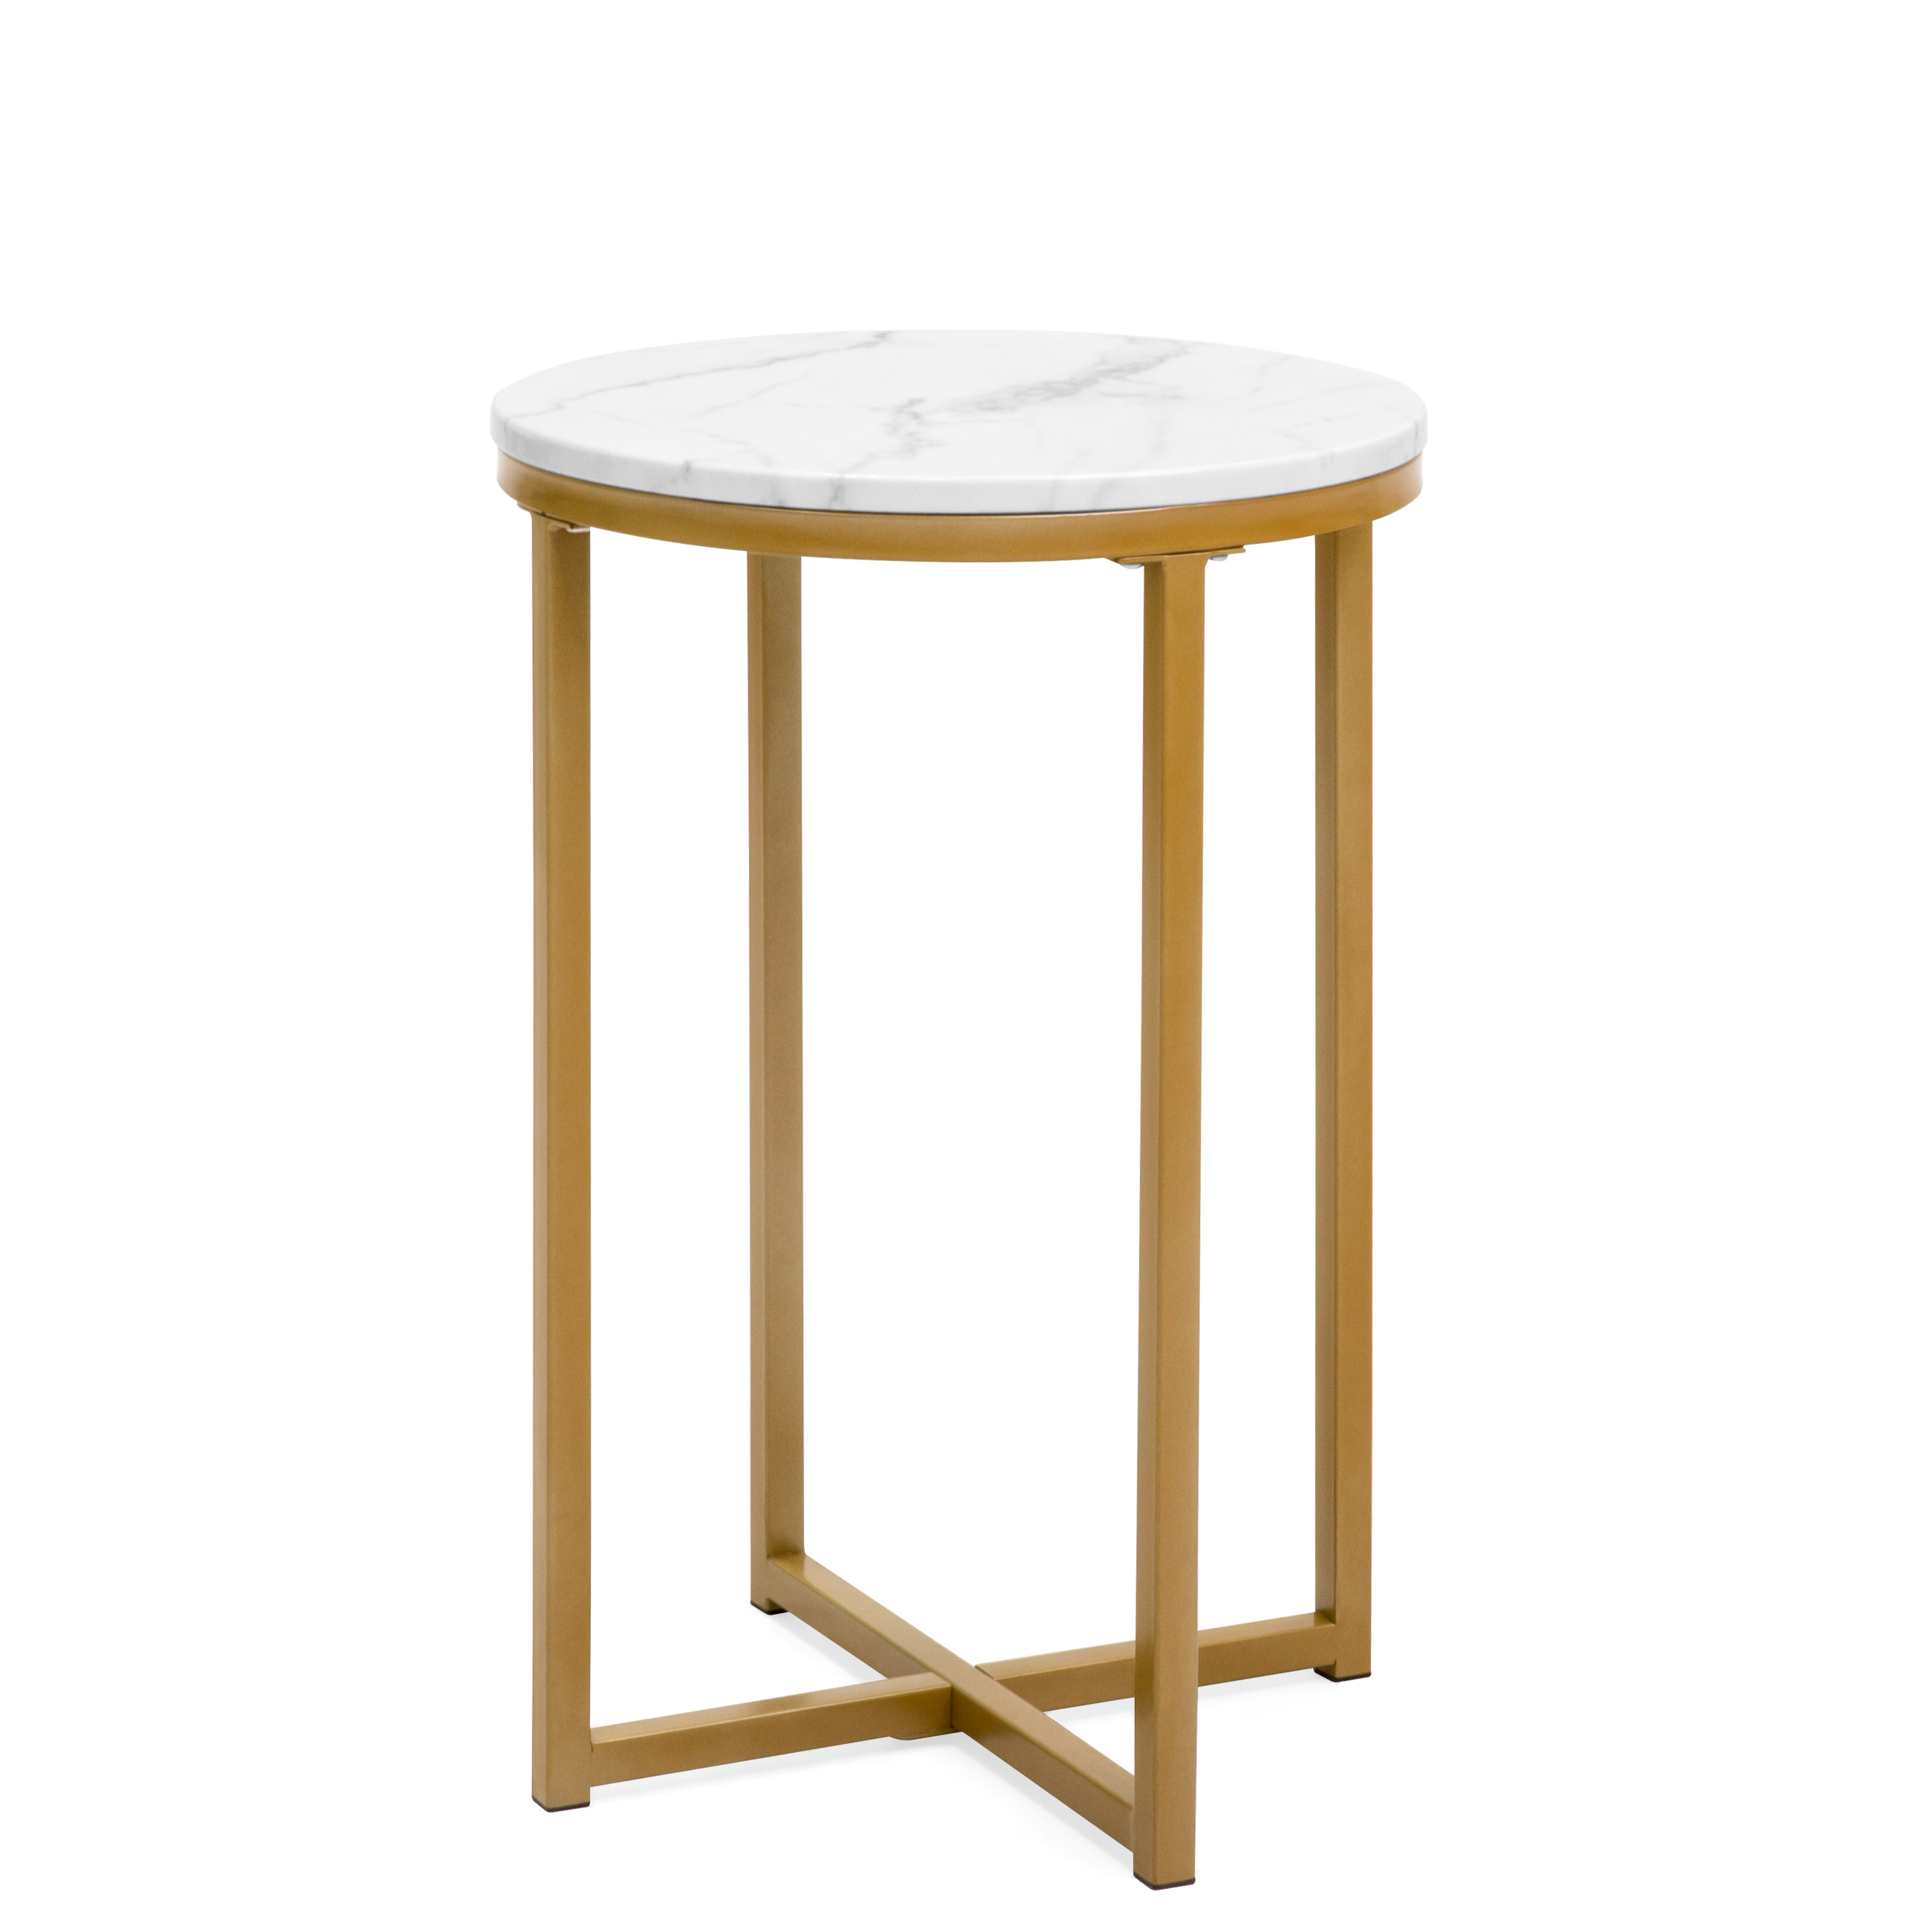 best choice products modern living room round side end accent metal table coffee nightstand frame faux marble top white gold glass short patio west elm yellow lamp aluminium